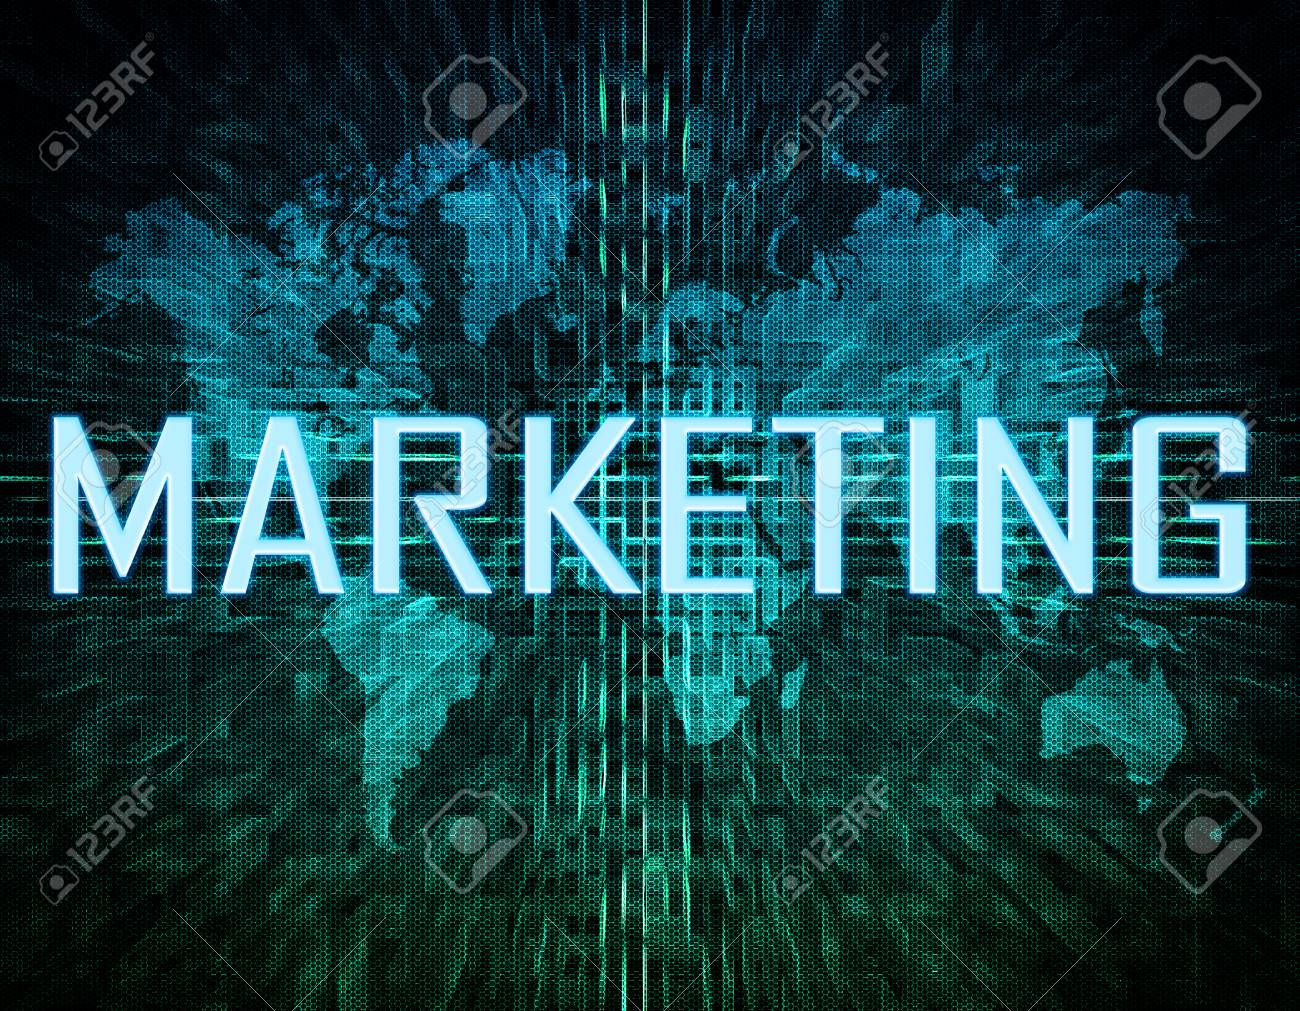 Marketing text concept on green digital world map background stock marketing text concept on green digital world map background stock photo 29061614 gumiabroncs Images